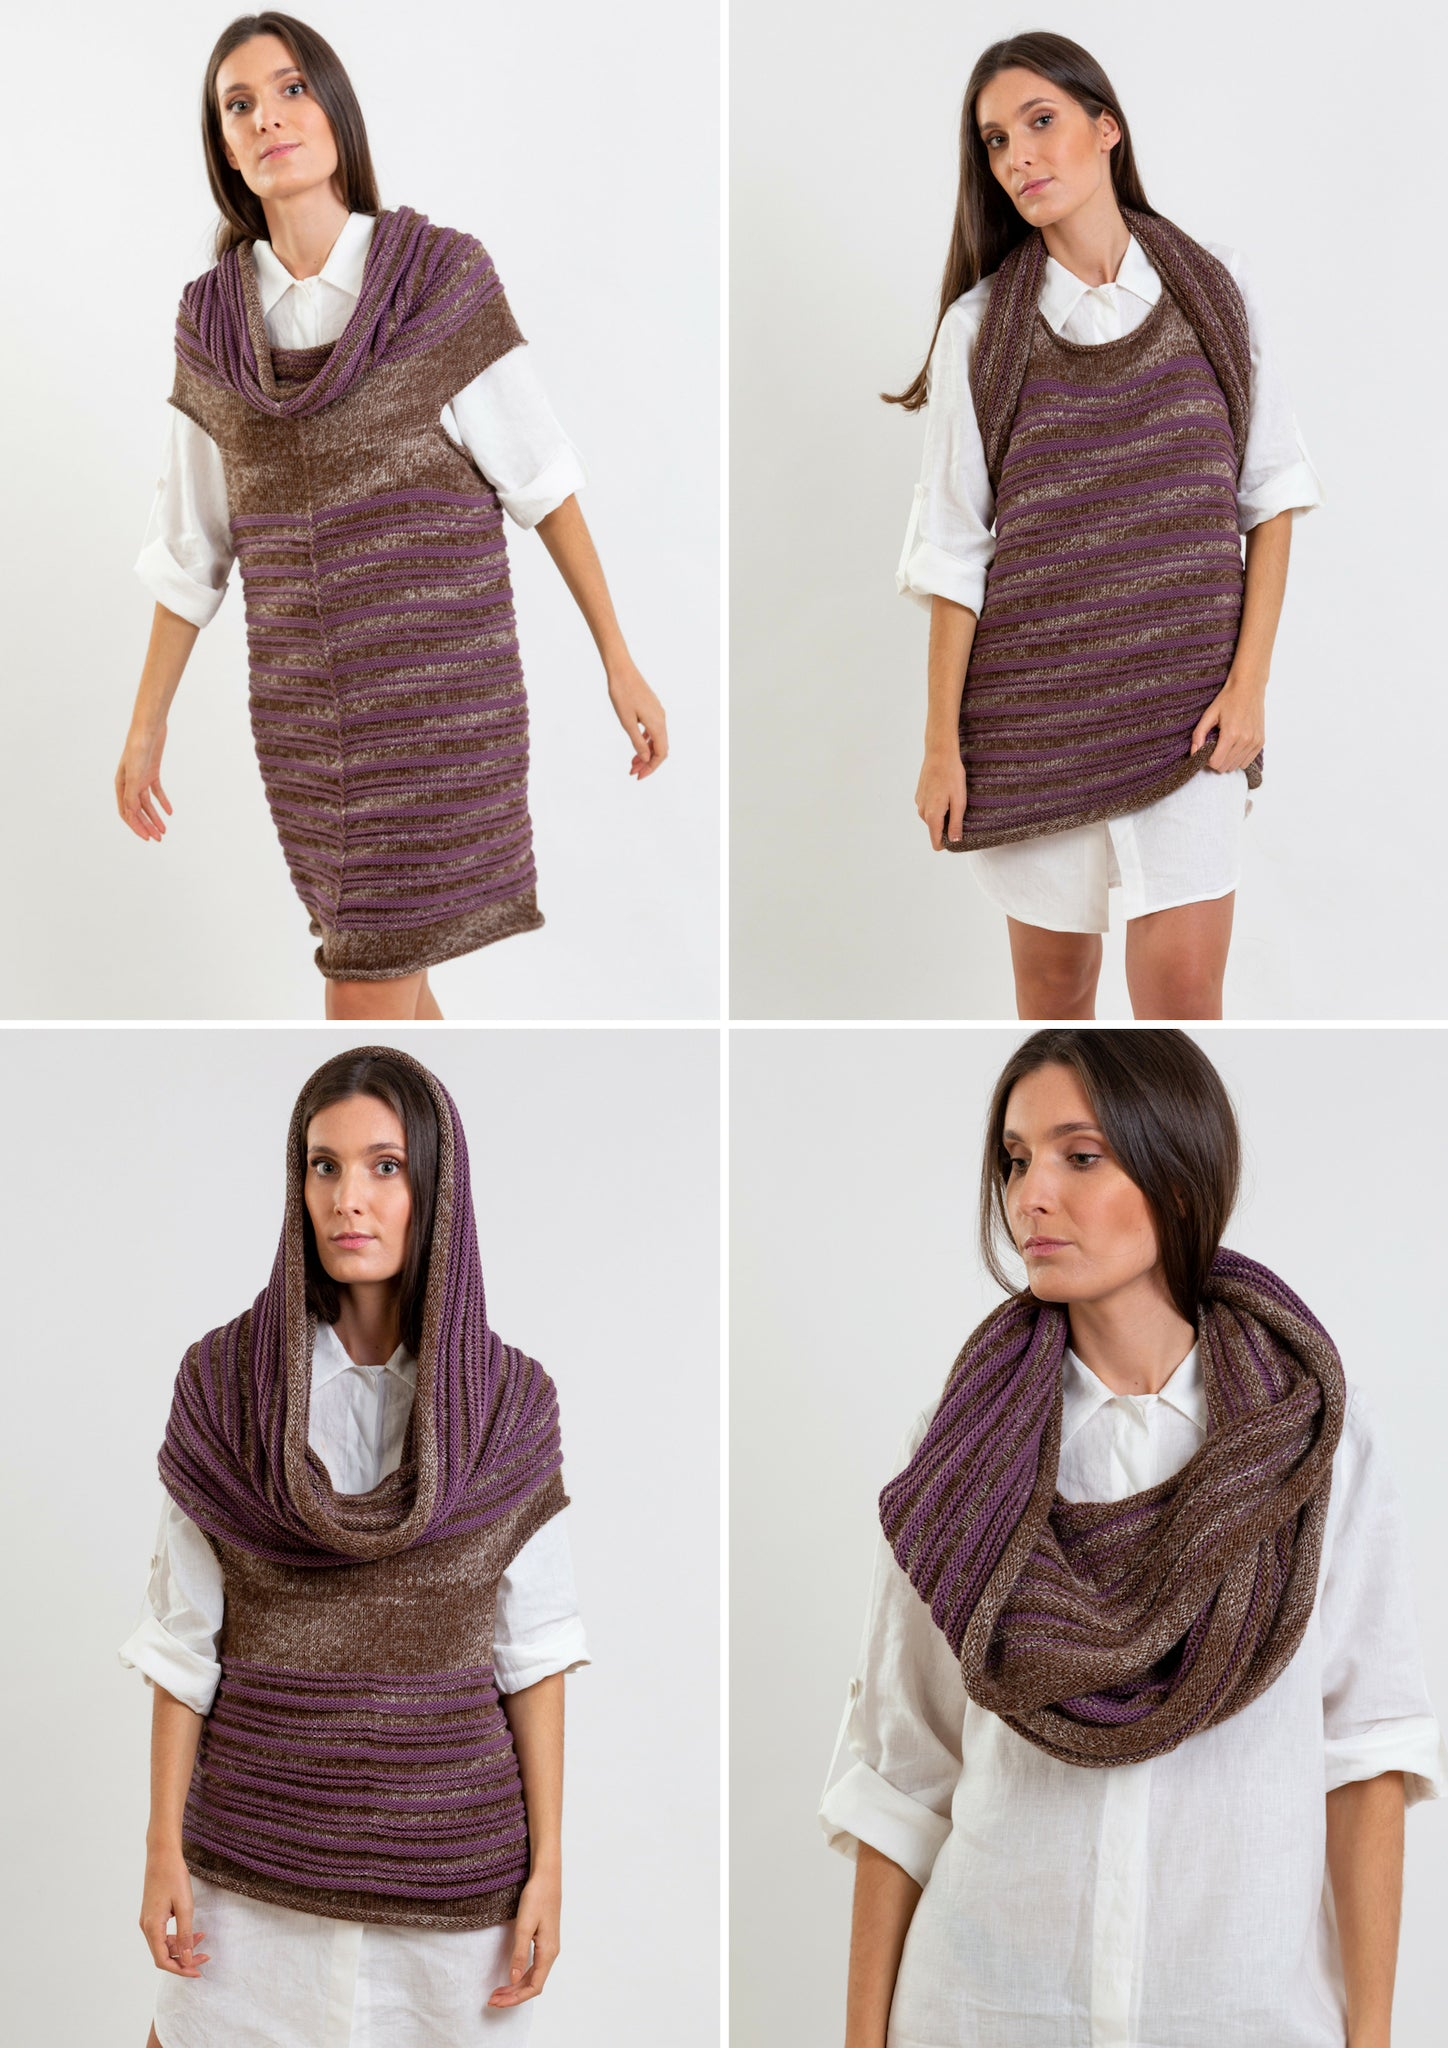 Multifunctional wool top in purple and brown which can be worn as a scarf or hoody top.